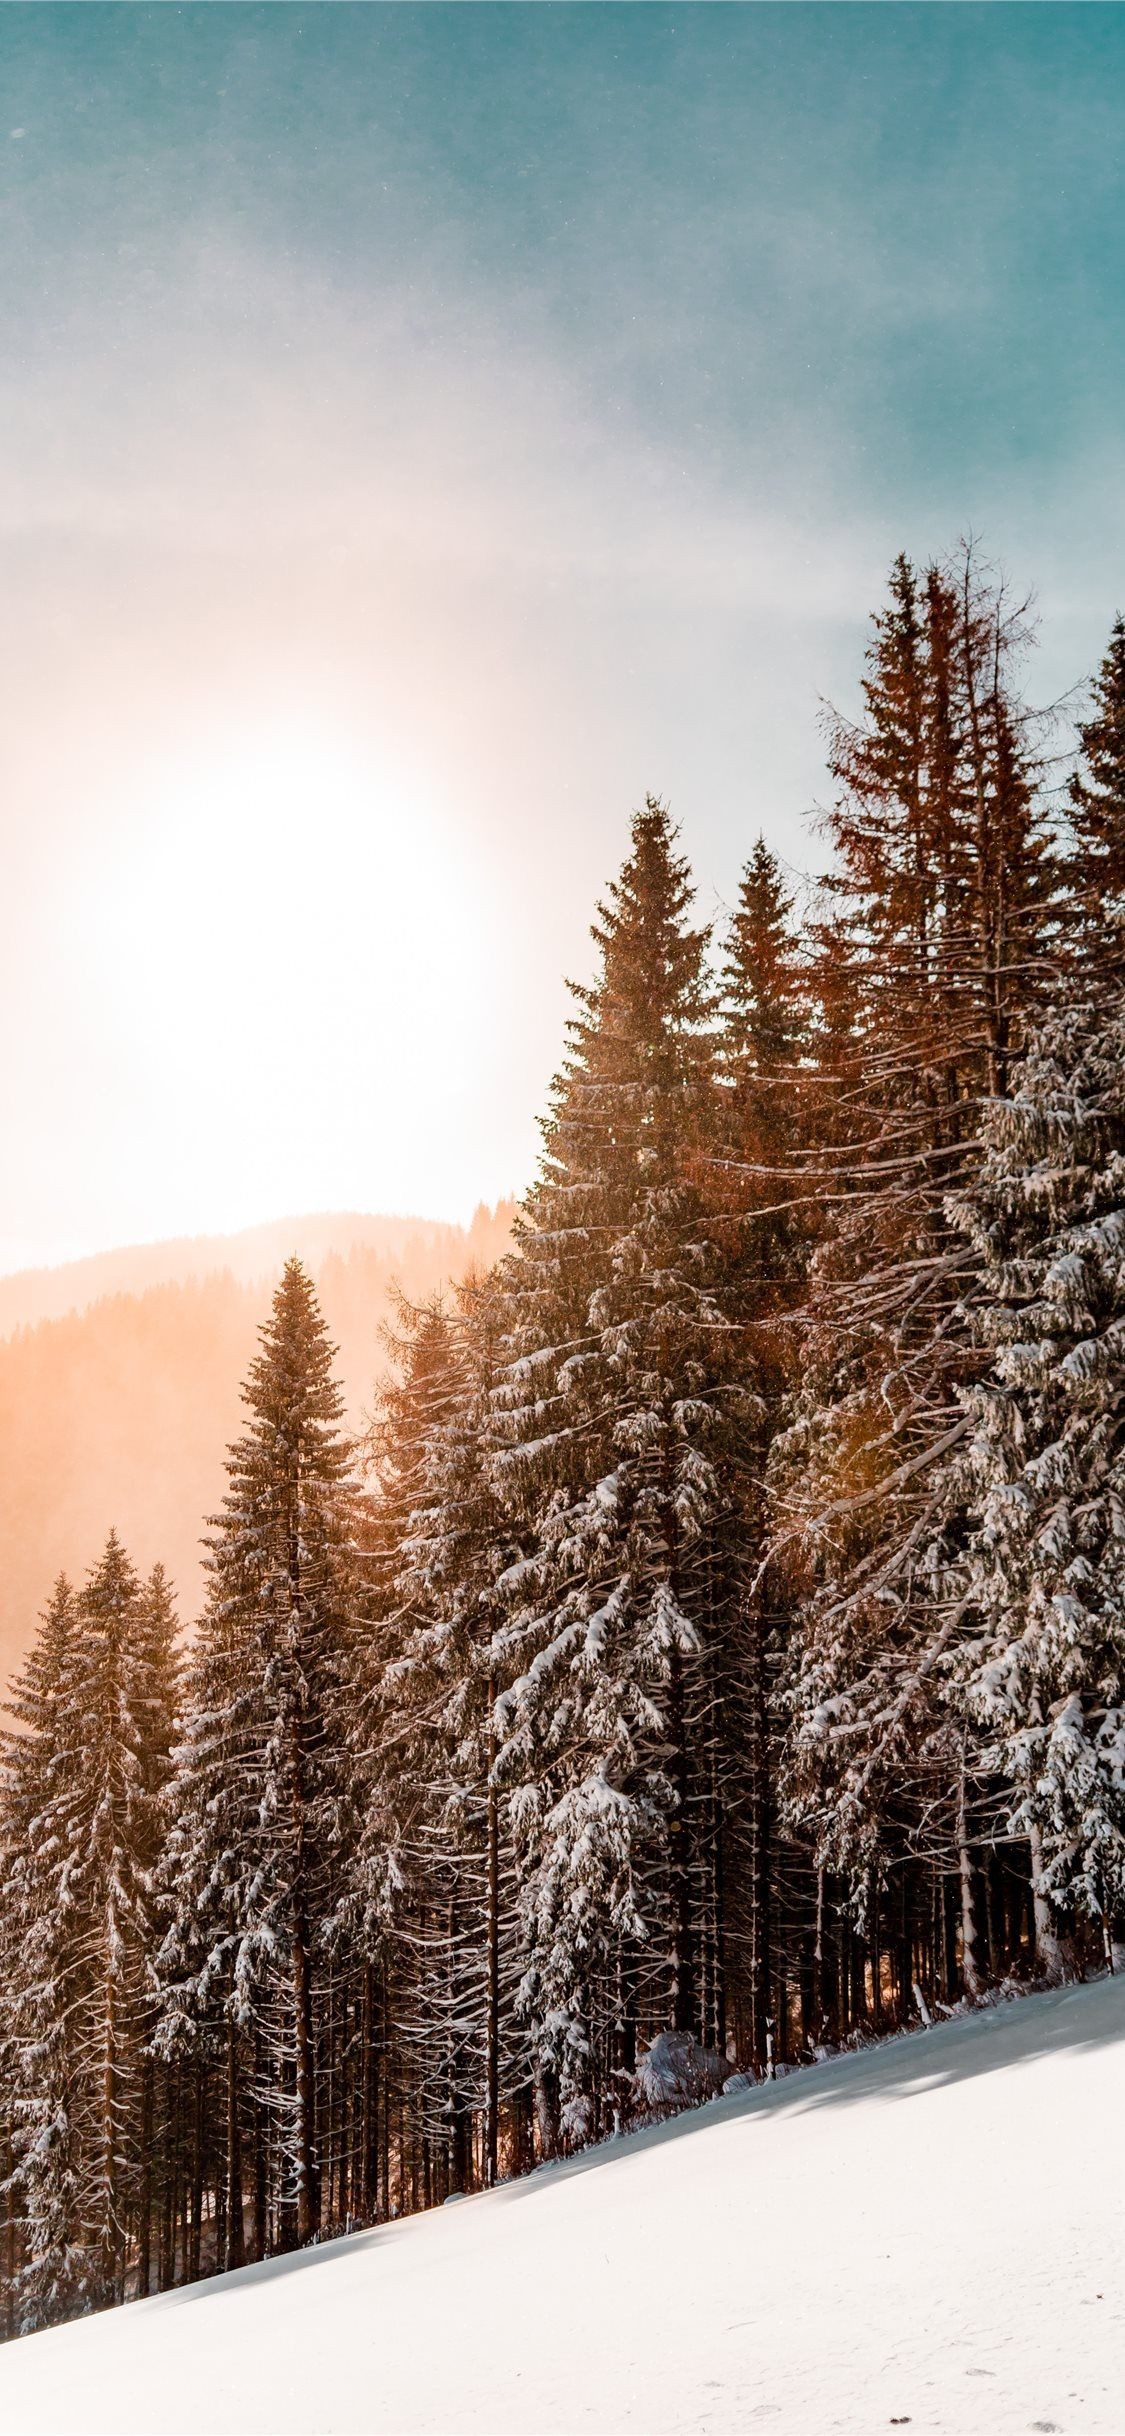 Free Download The Green Pine Trees On Inclined Snow Mountain Wallpaper Wallpaper Beaty Your Iphone Snow Wallpaper Iphone Forest Wallpaper Nature Wallpaper